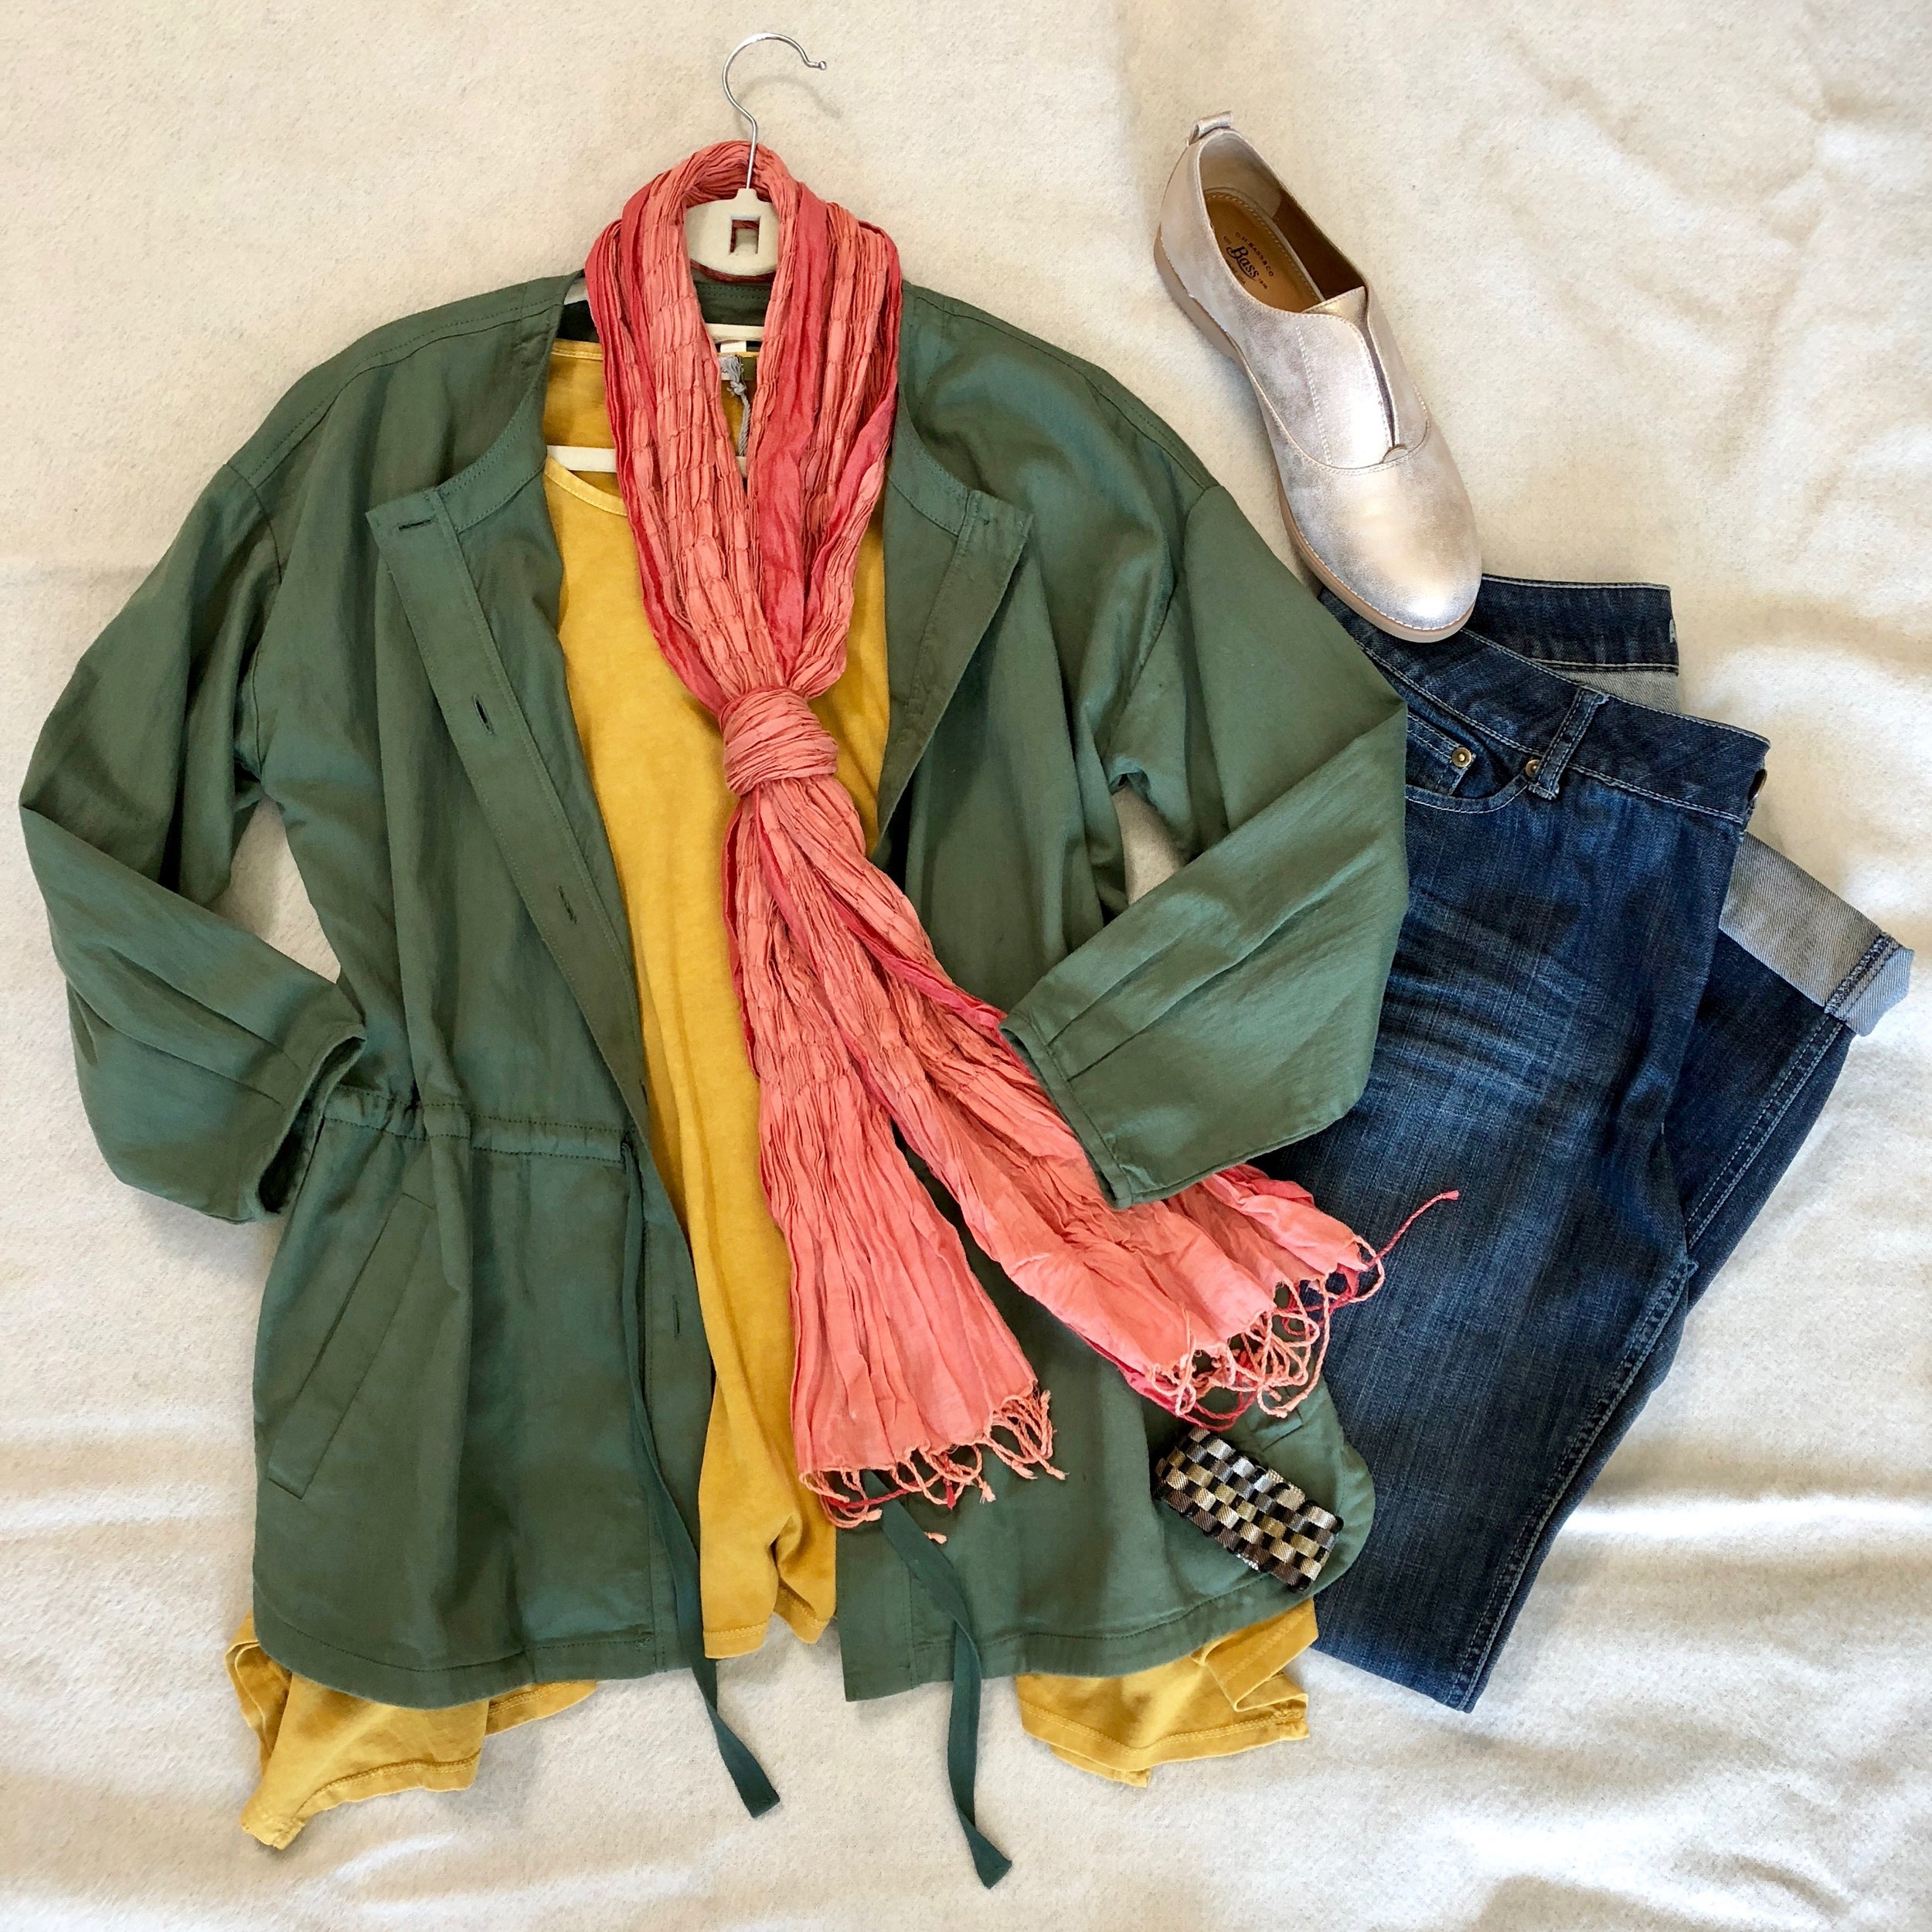 Mustard and coral are a fun color combo, especially when paired with an olive jacket. And when in doubt, metallic shoes are a no-brainer!